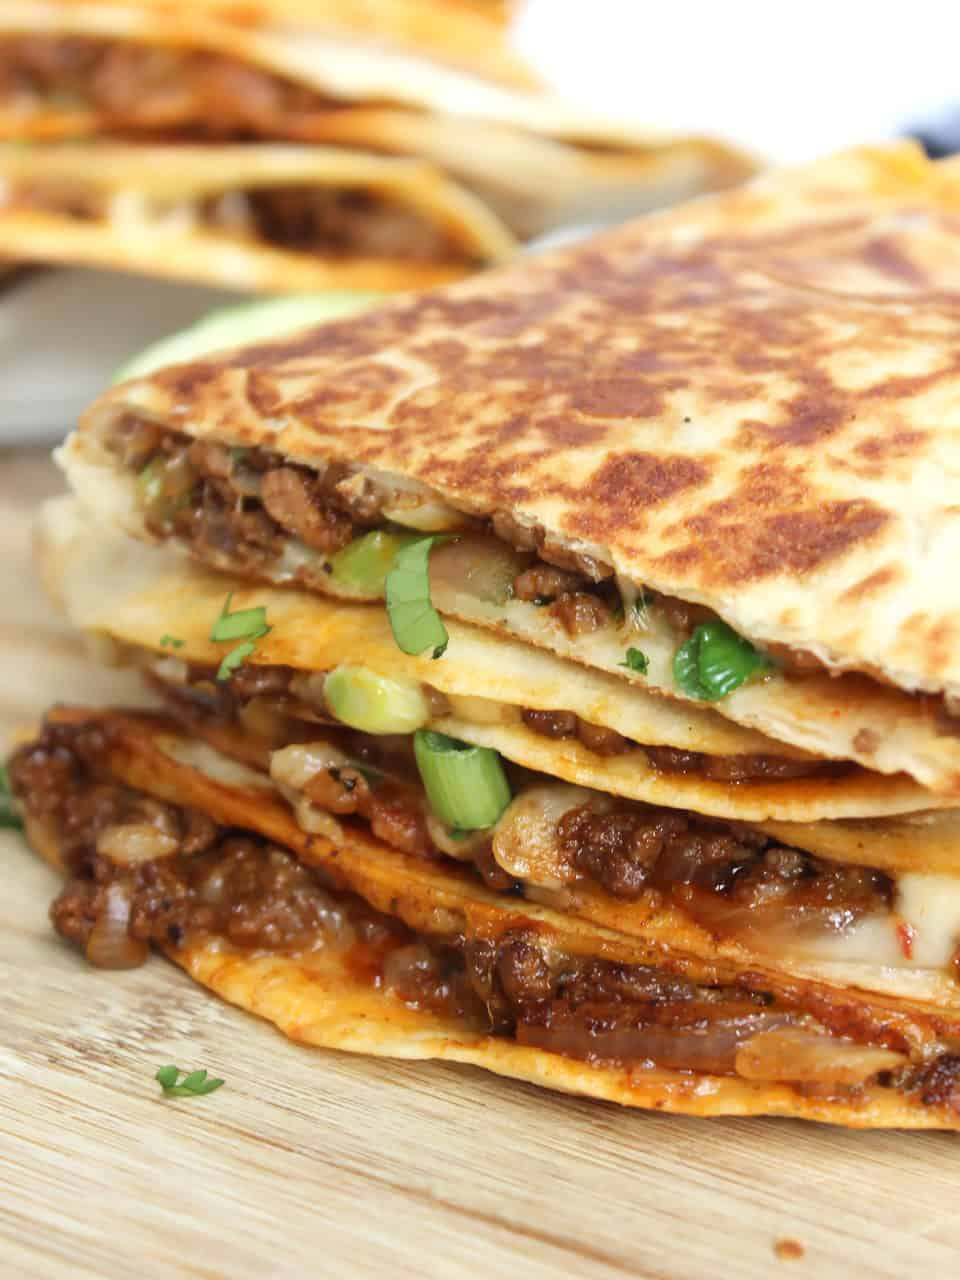 Quesadillas garnished with scaliions.